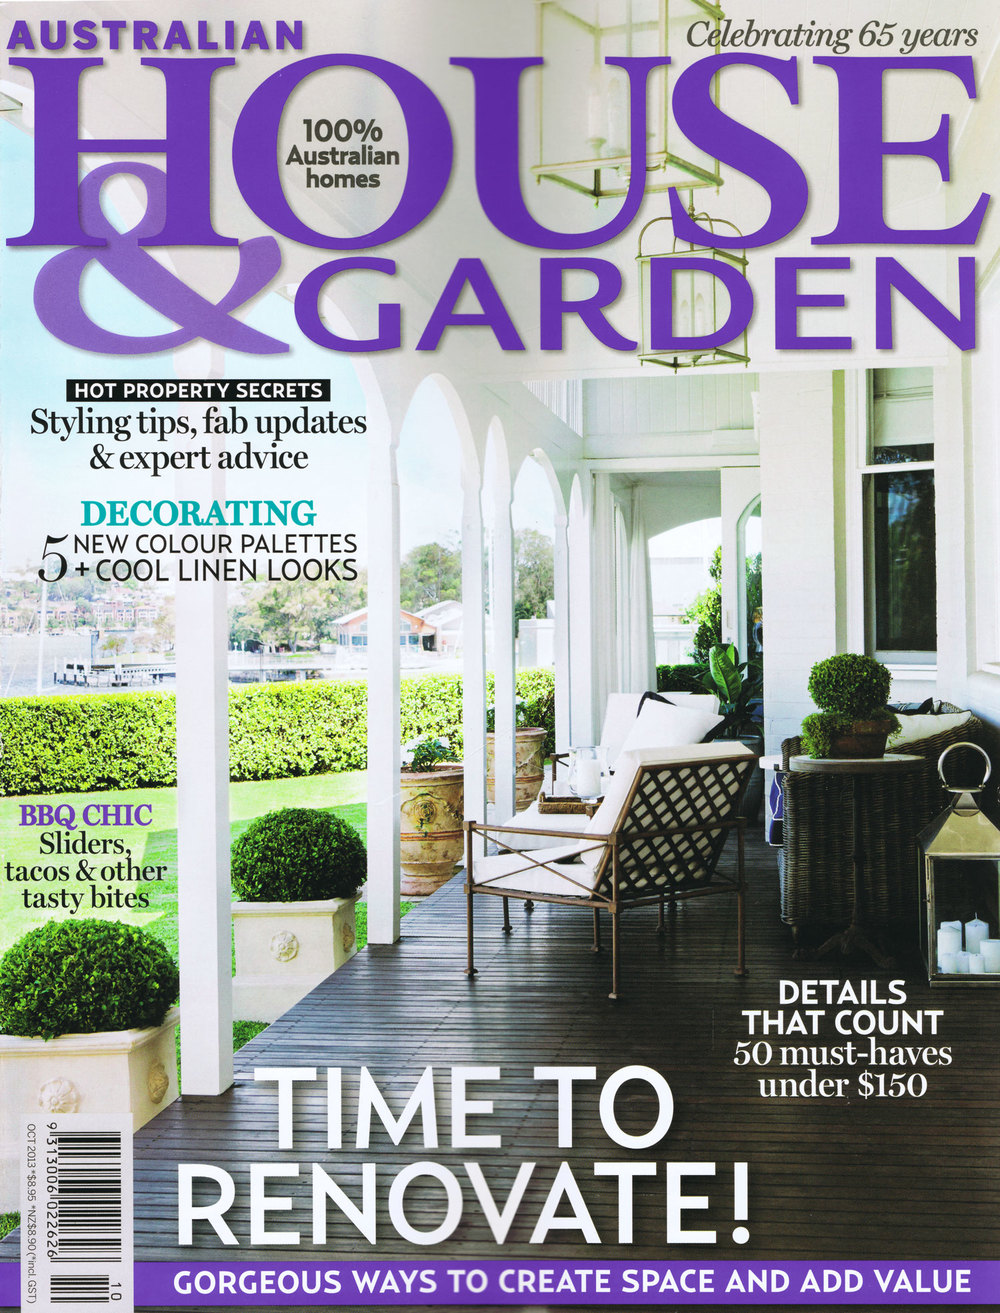 house-and-garden-october-2013-cover.jpg